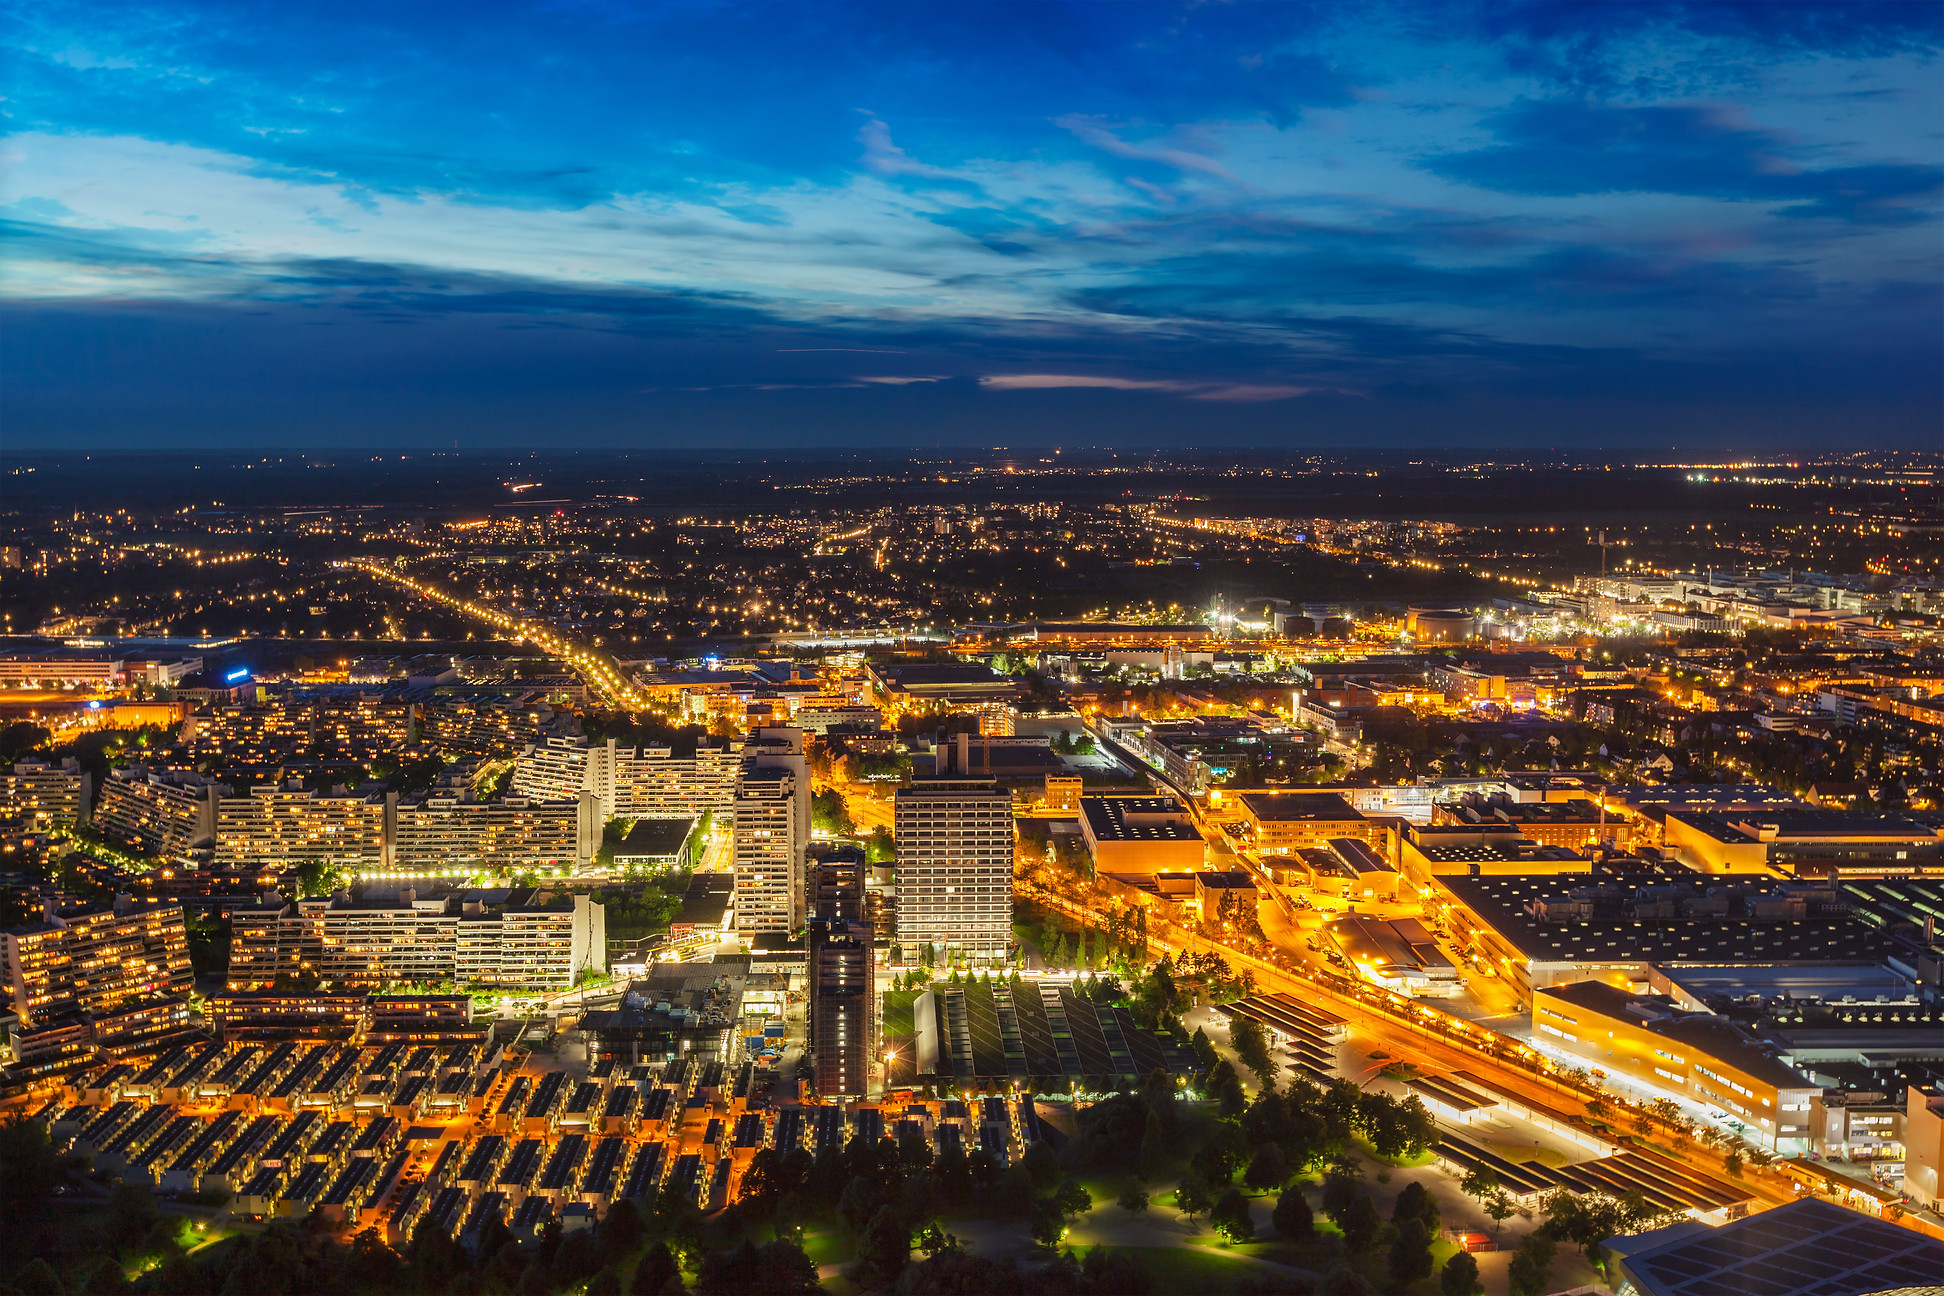 Night aerial view of Munich from Olympia